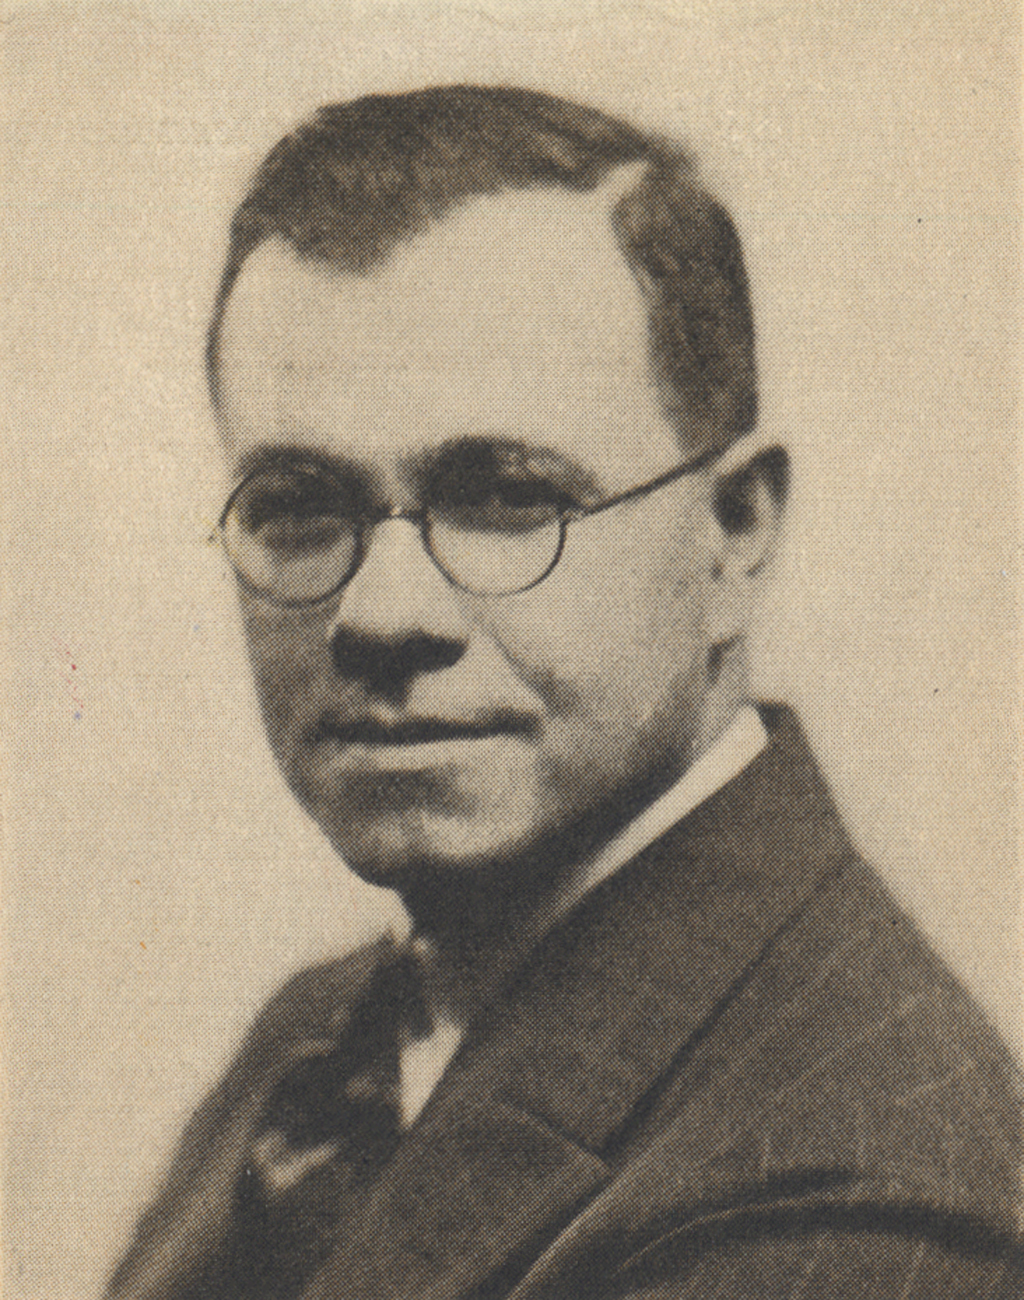 Harry L. Gage, Assistant Director of Linotype Typography. From The Linotype Magazine (September 1927), p. 171.